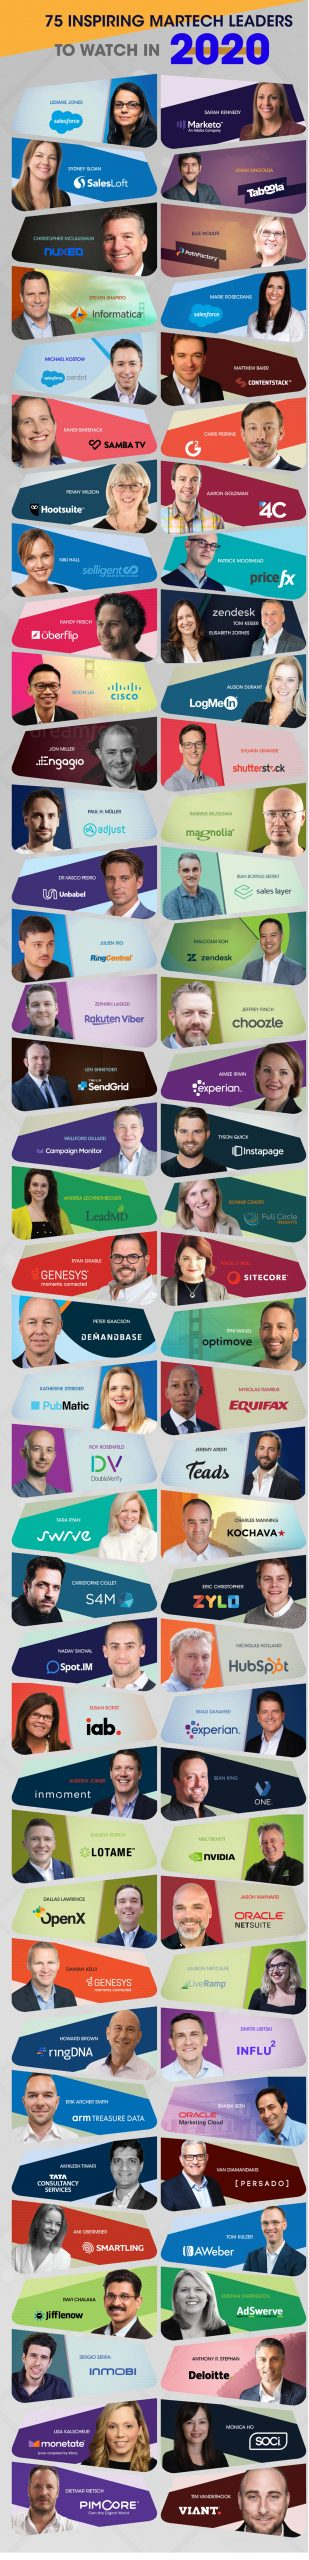 75 Inspiring Martech Leaders